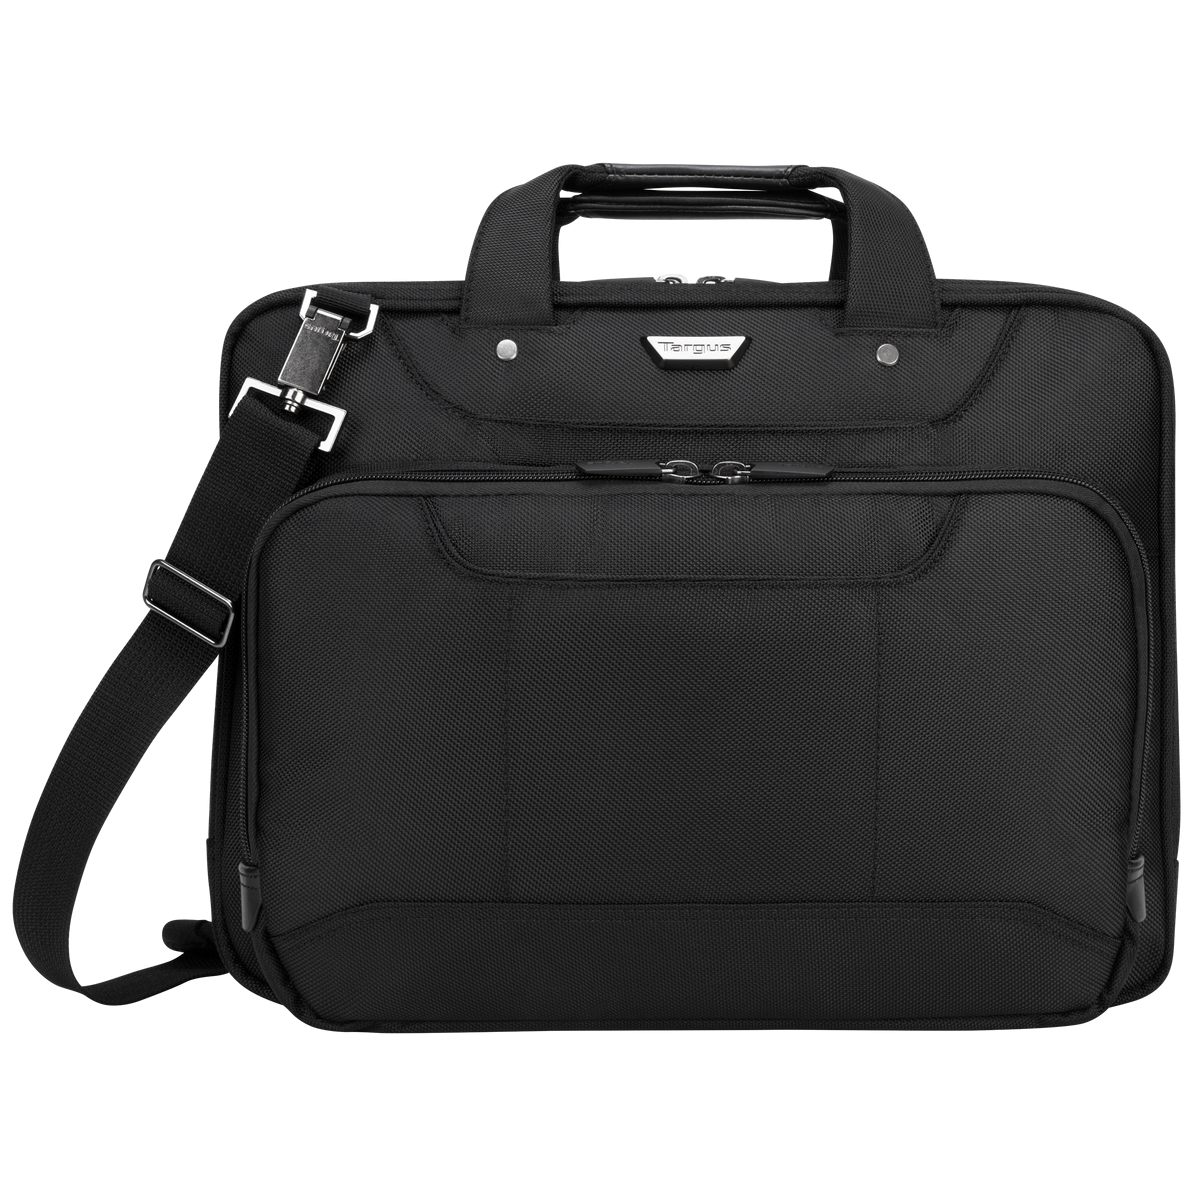 14 Checkpoint Friendly Corporate Traveler Laptop Case Cuct02ua14s Black Briefcases Targus